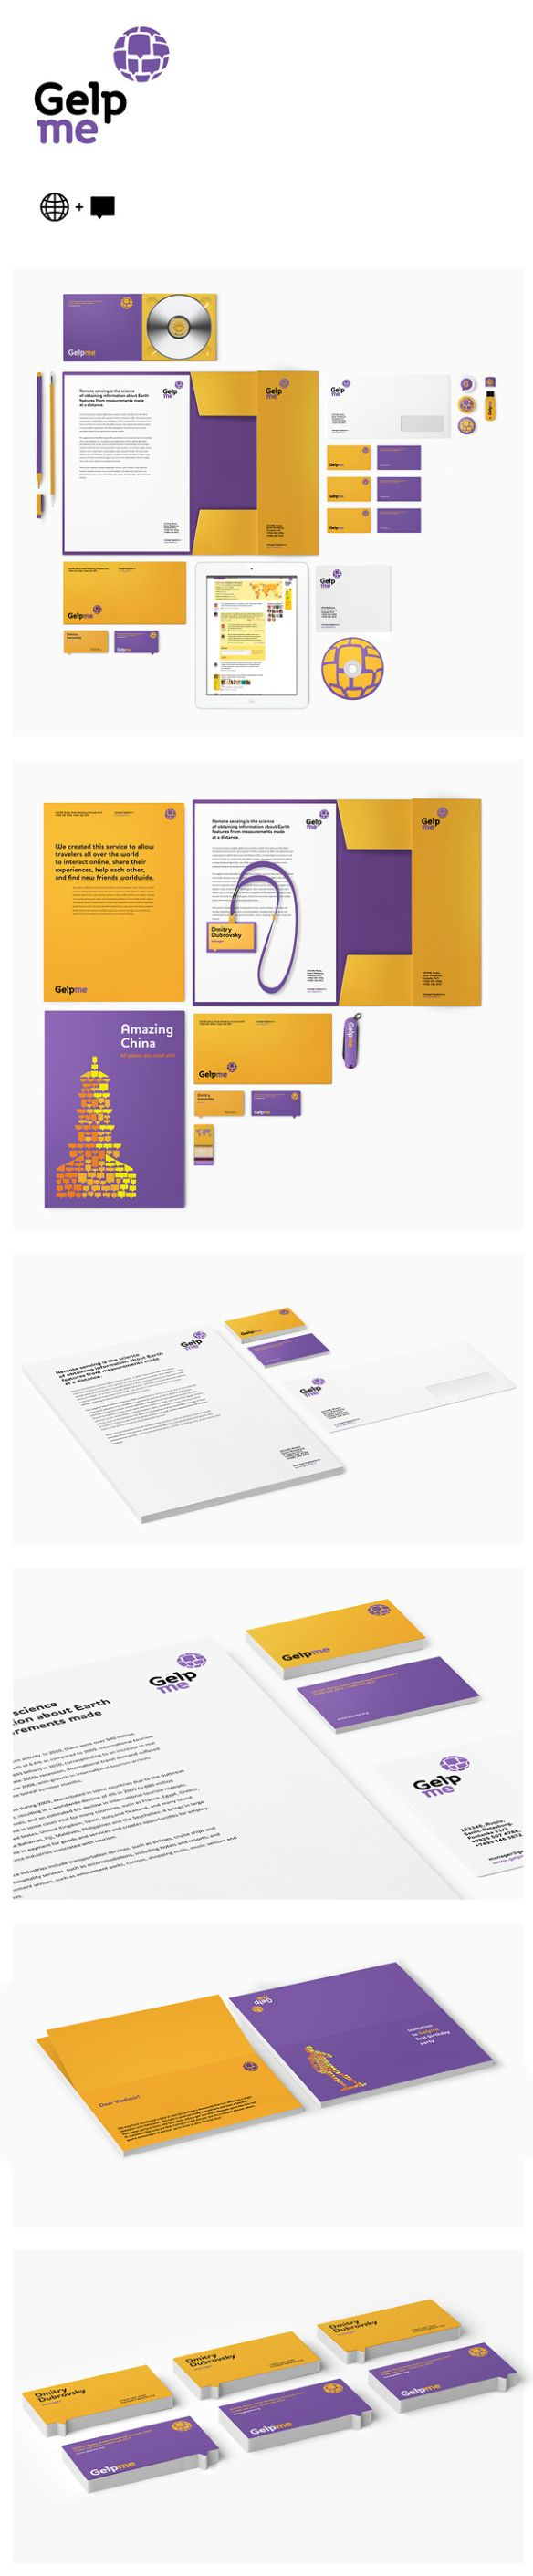 branding-collection-09_20120927